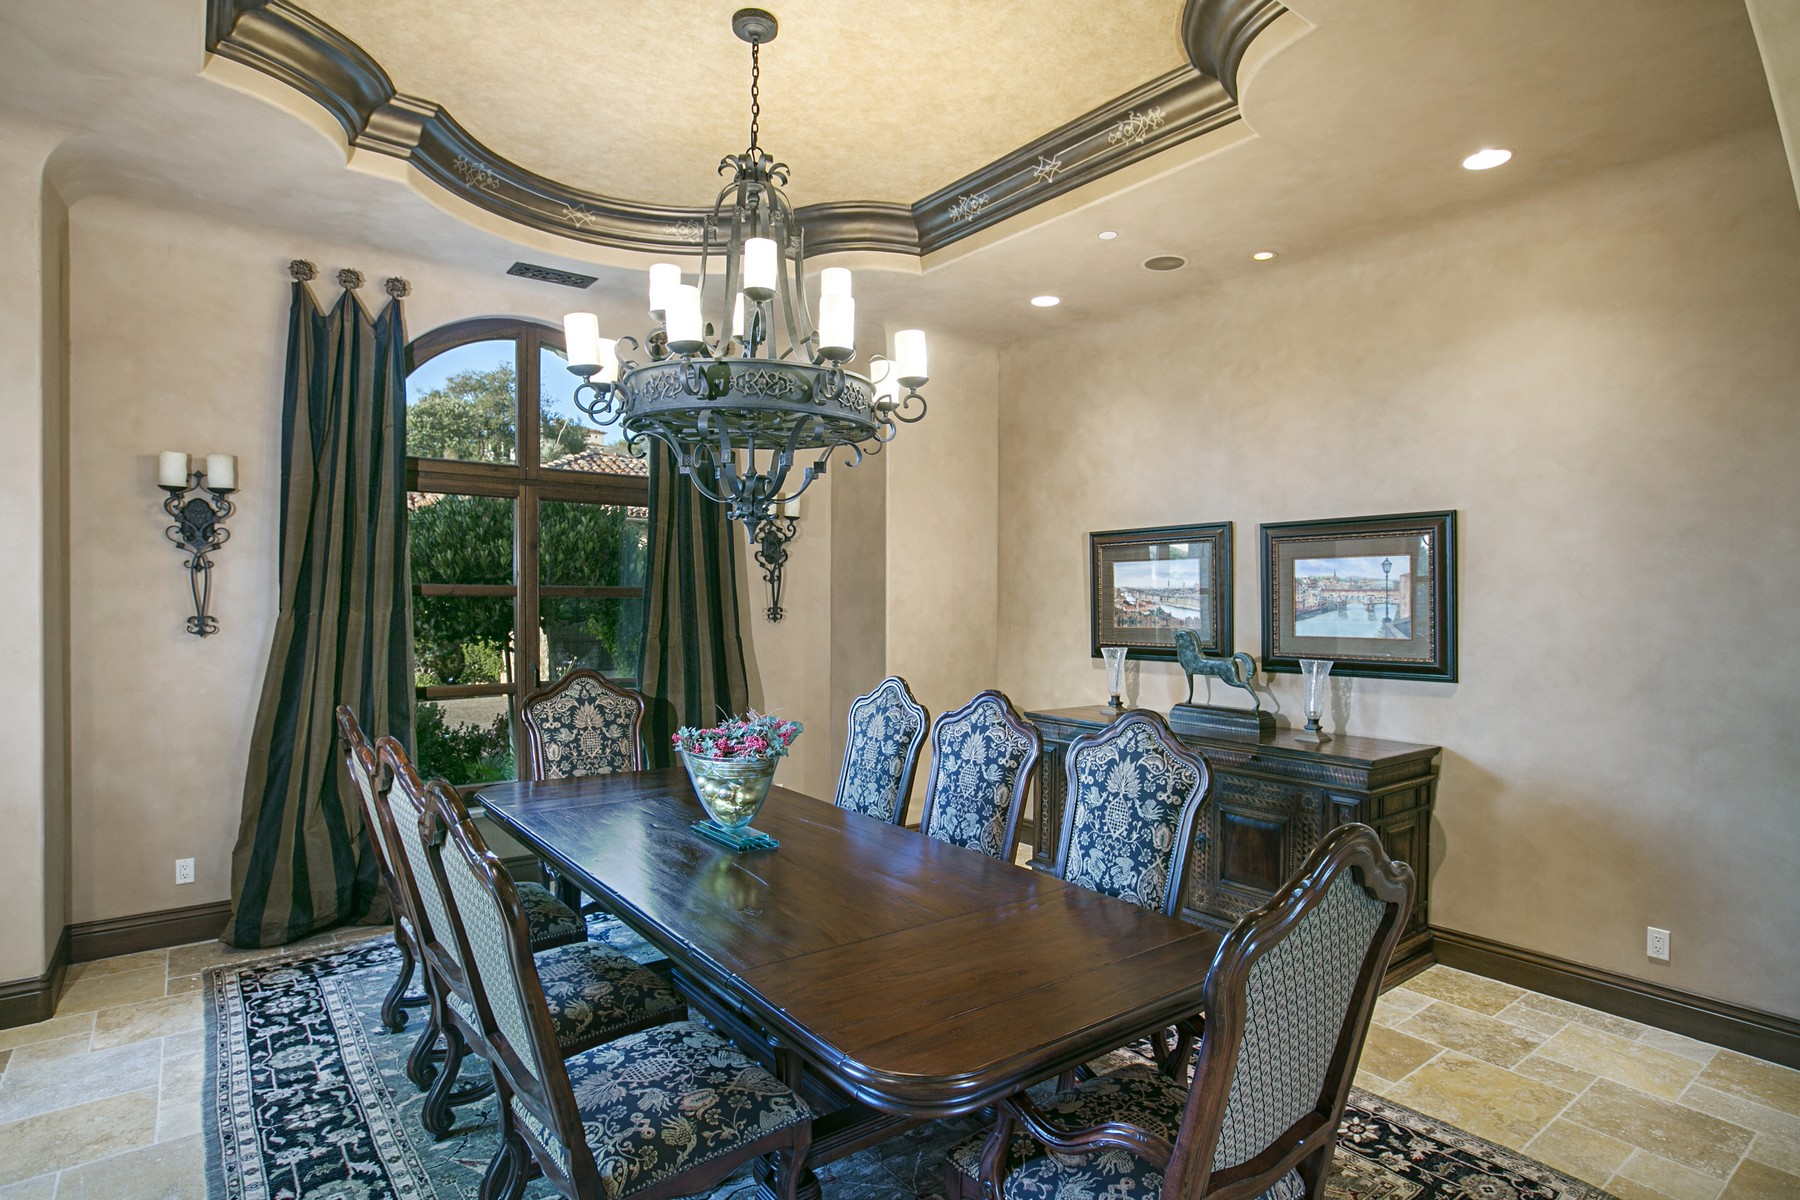 Additional photo for property listing at 7667 Camino de Arriba  Rancho Santa Fe, California 92067 Estados Unidos